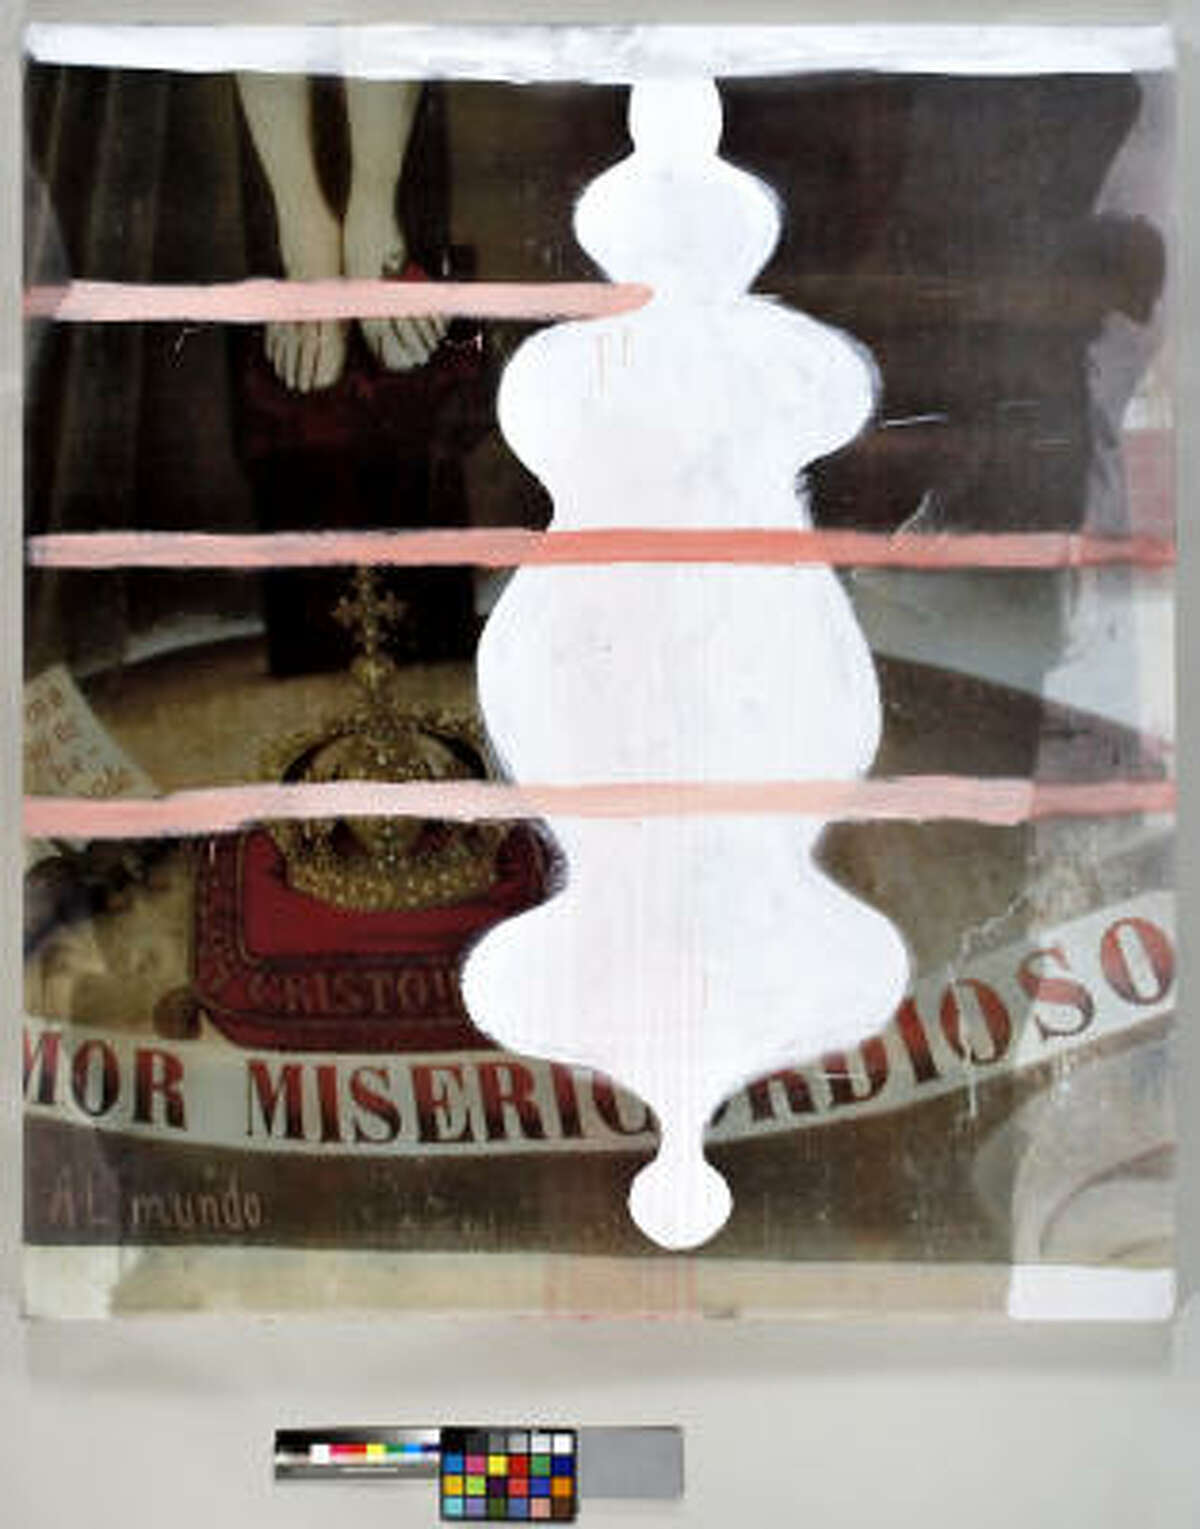 A painting by Schnabel: Untitled (Amor Misericordioso VII), 2005.